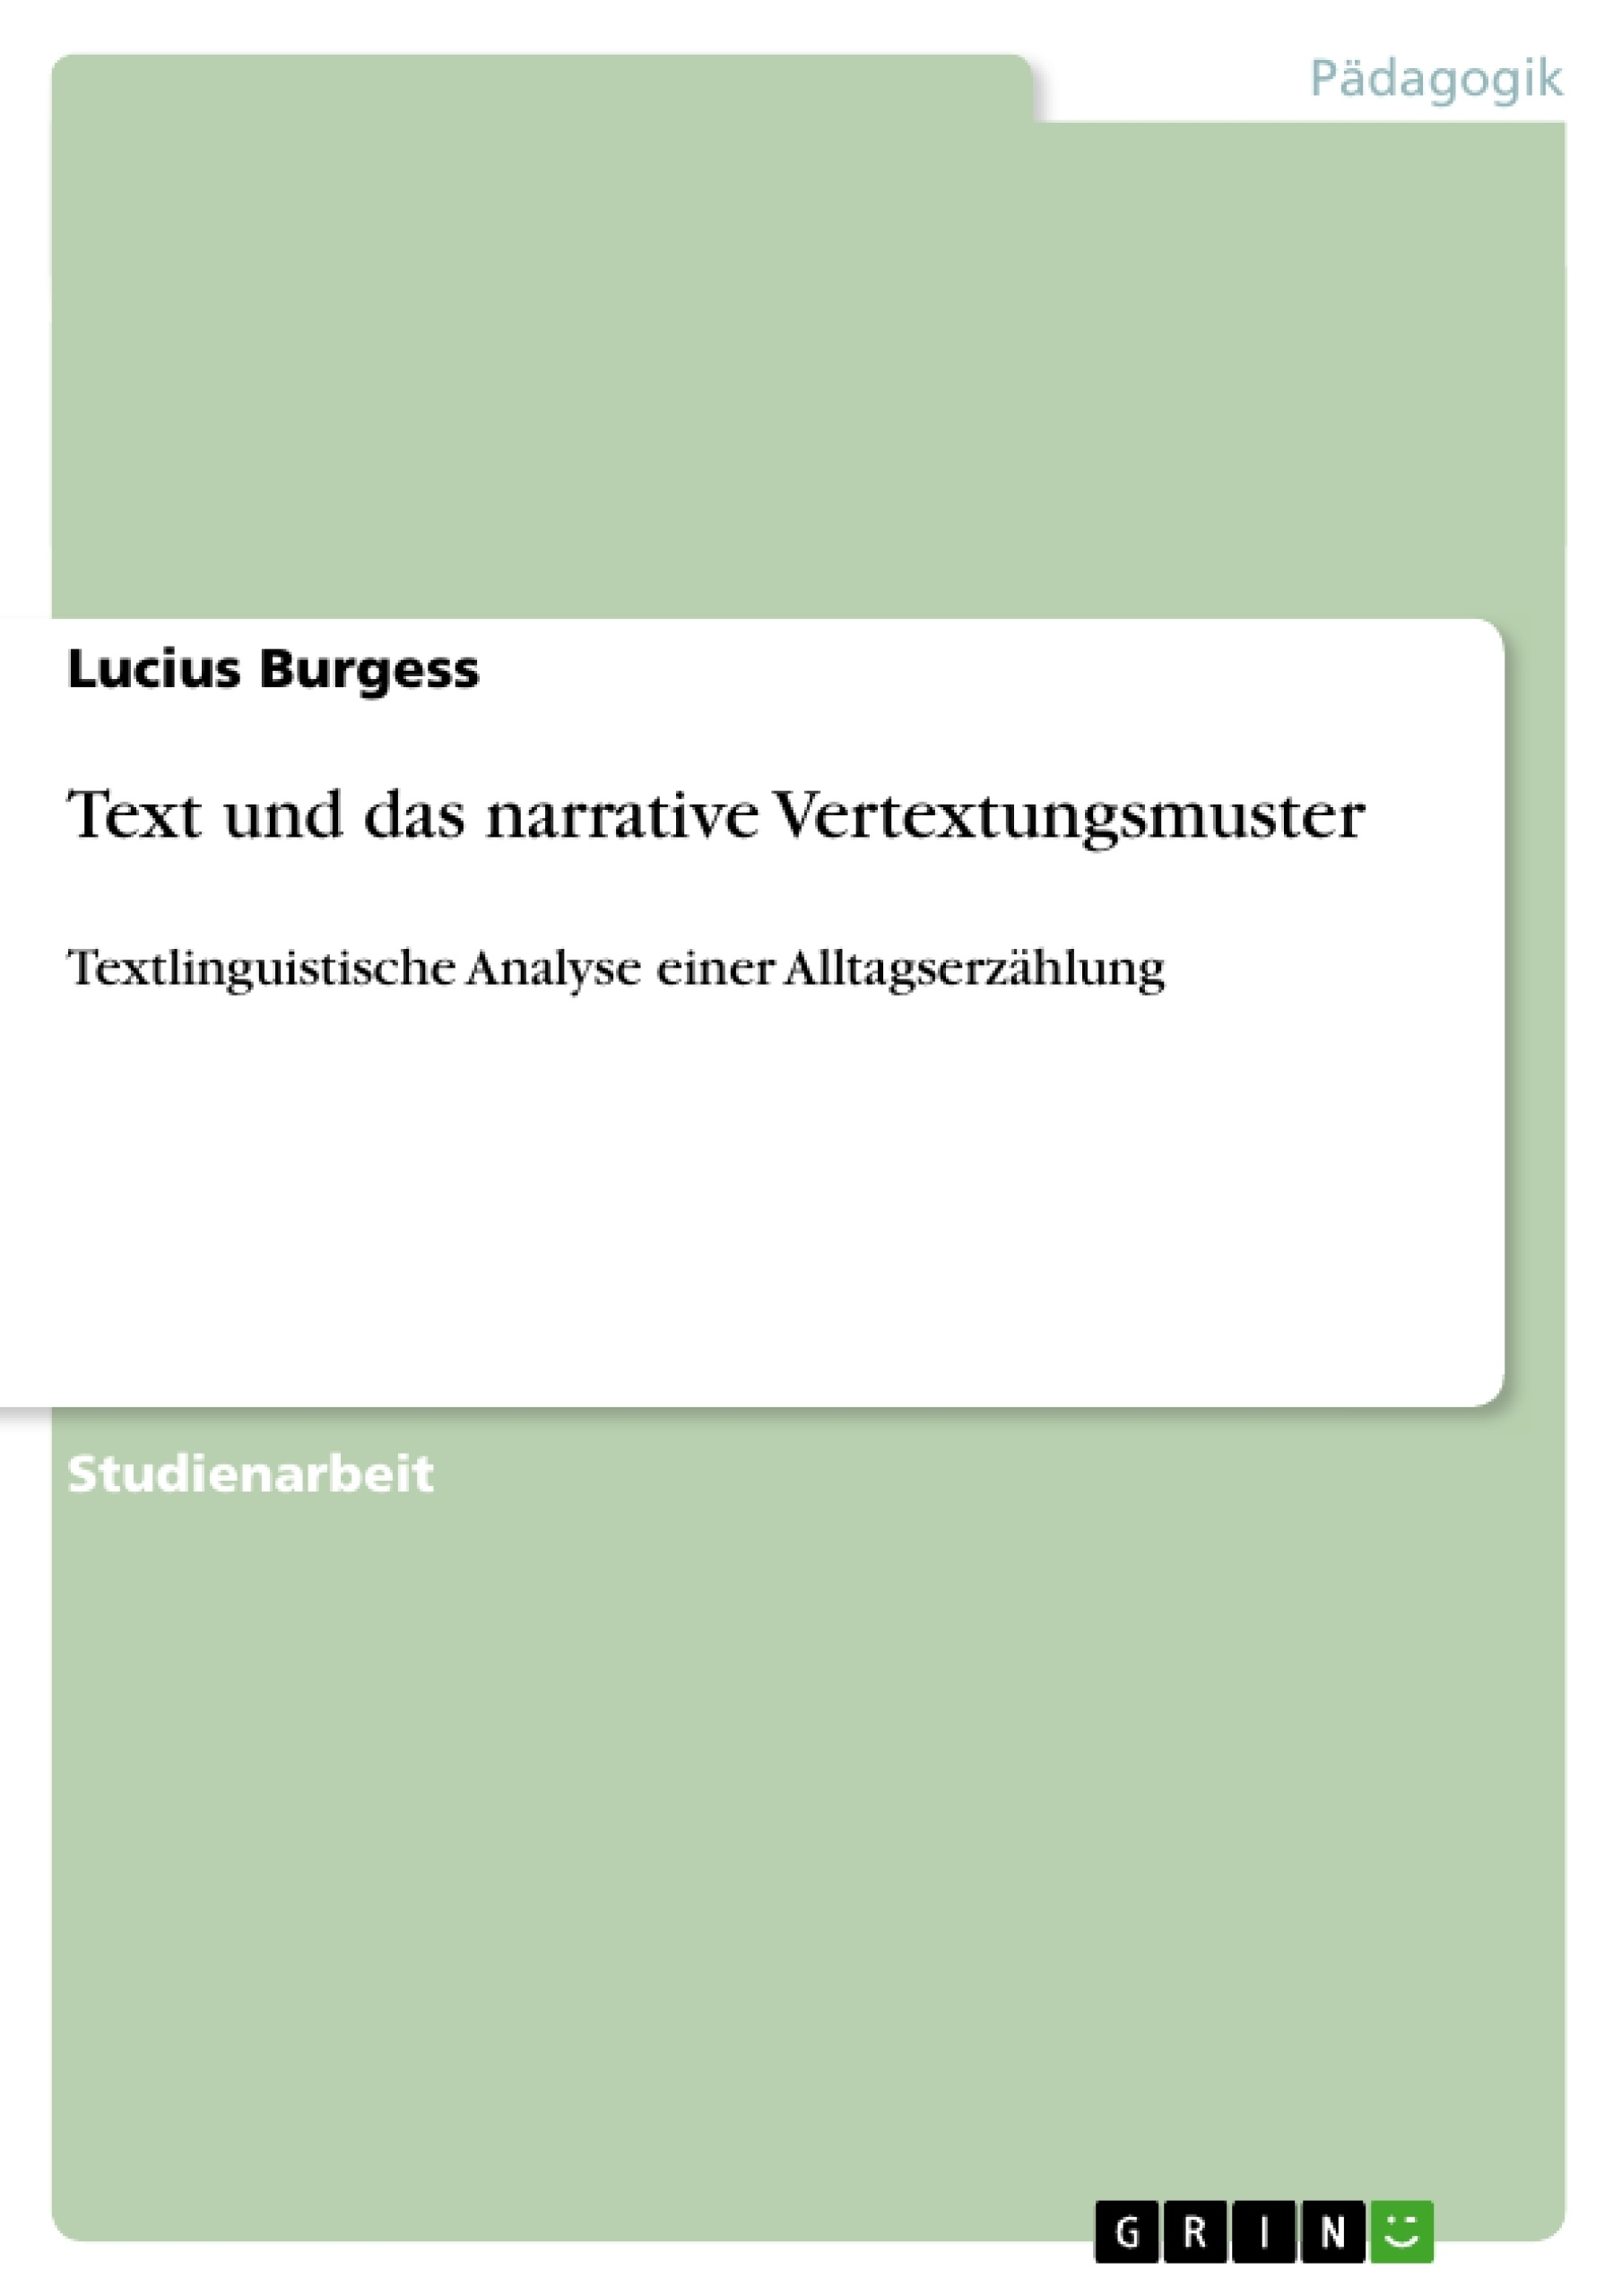 Titel: Text und das narrative Vertextungsmuster